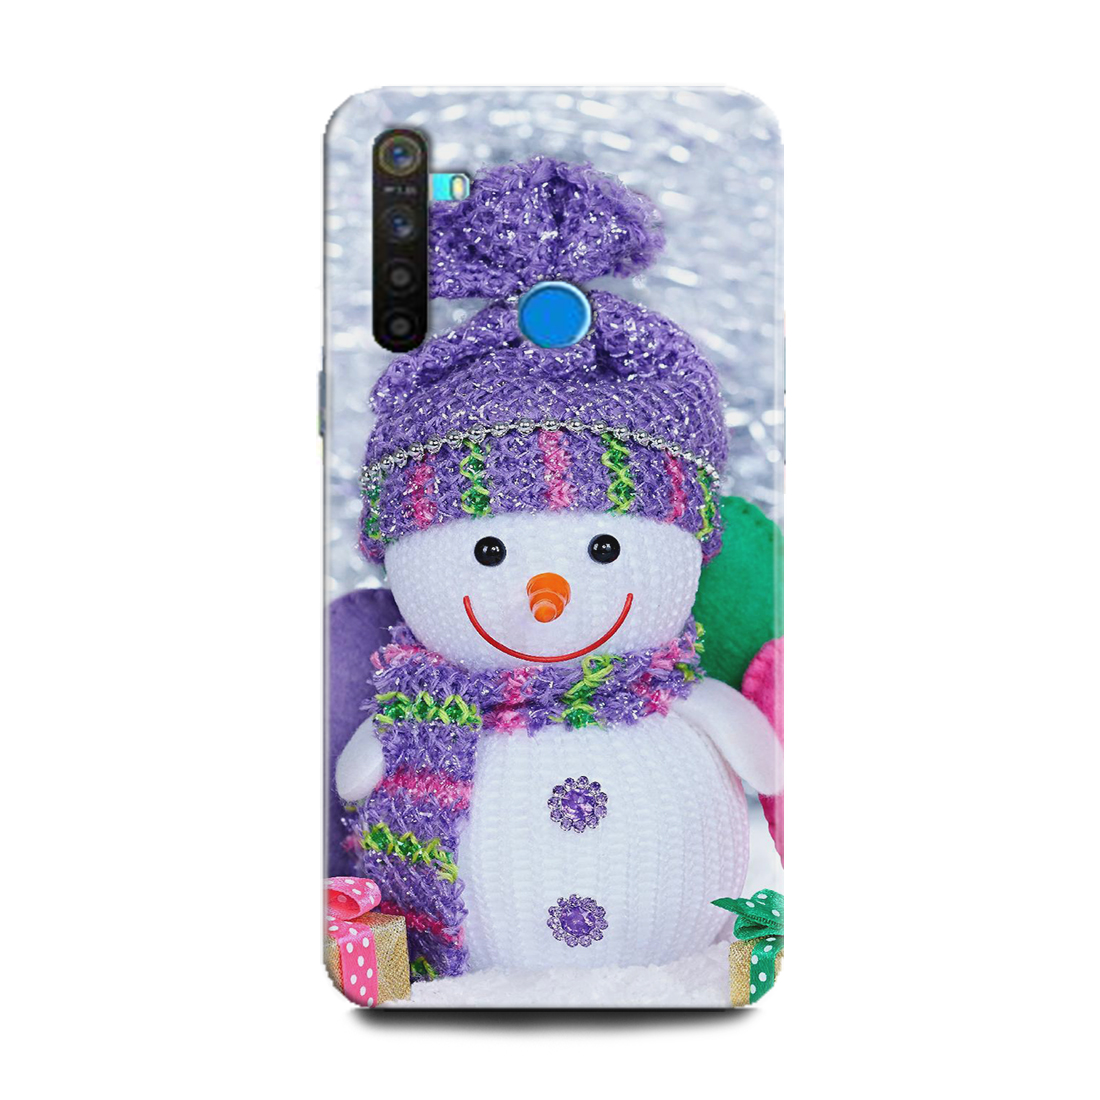 INDICRAFT Mobile Back Cover For Realme 5s Hard Case (Snow man, Winter Art, RMX1925) (AB-Realme5s-0096)